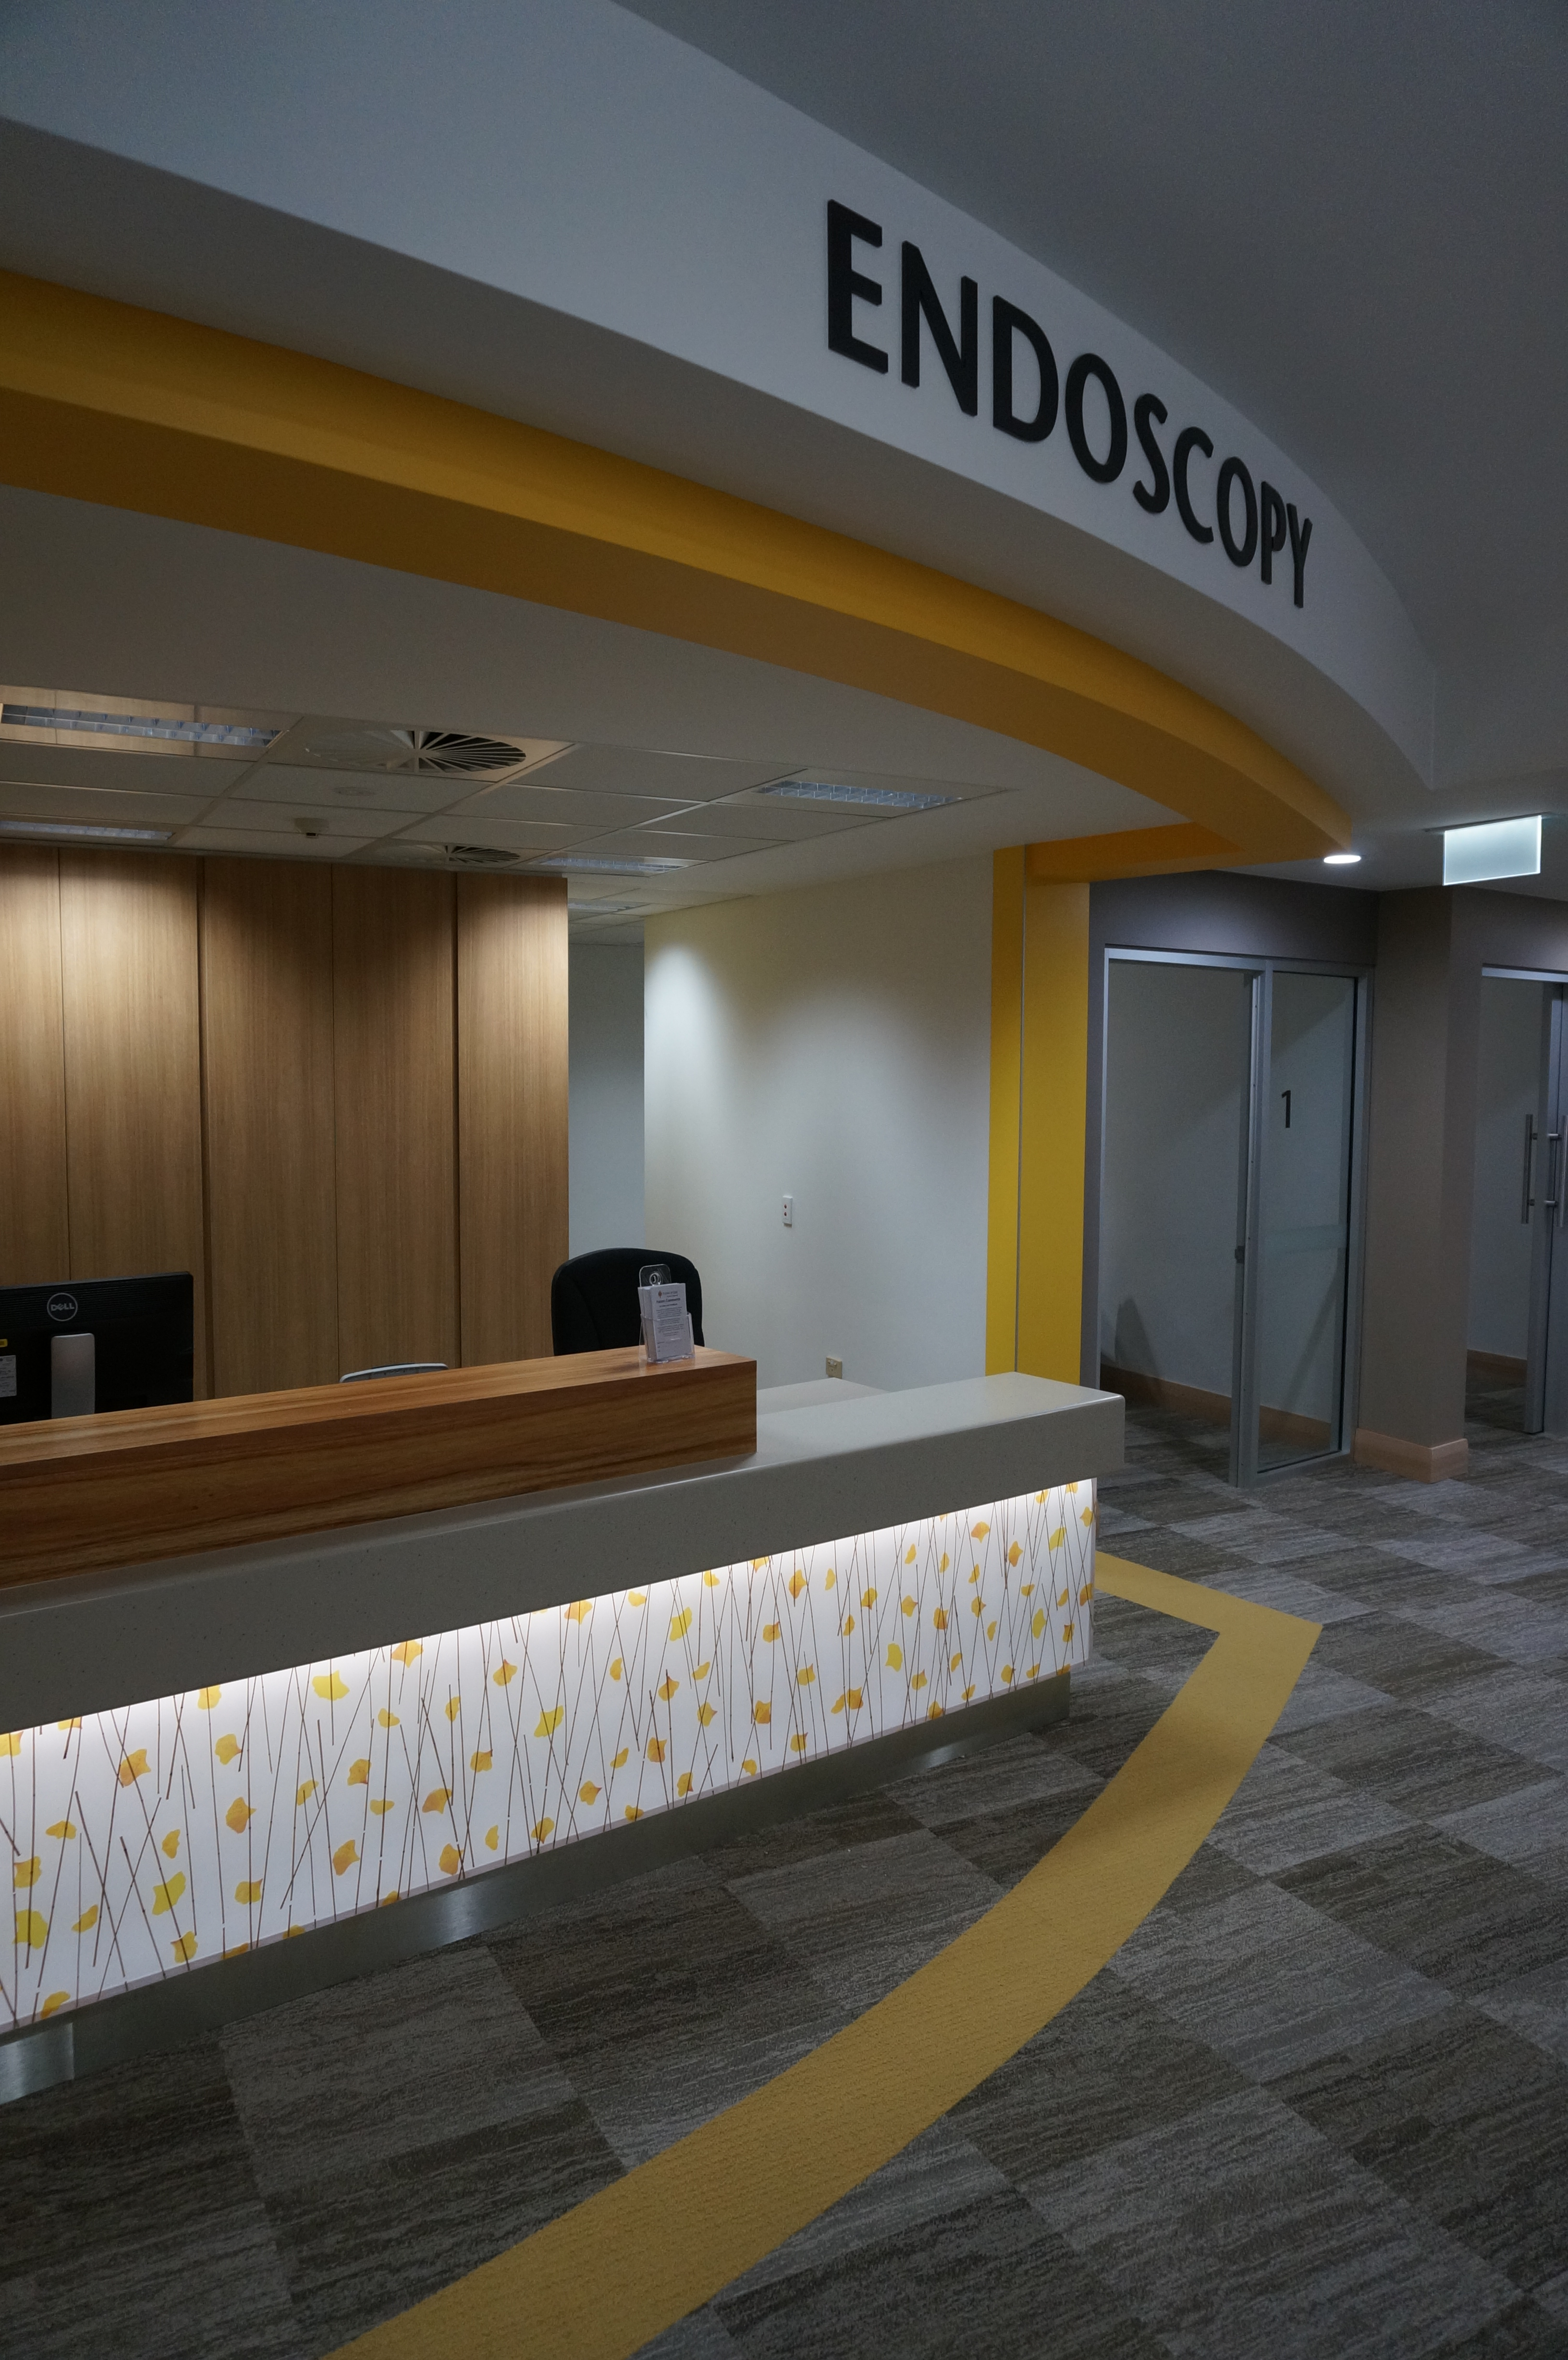 Endoscopy Procedure Room: New Endoscopy Unit Provides Excellence In Care